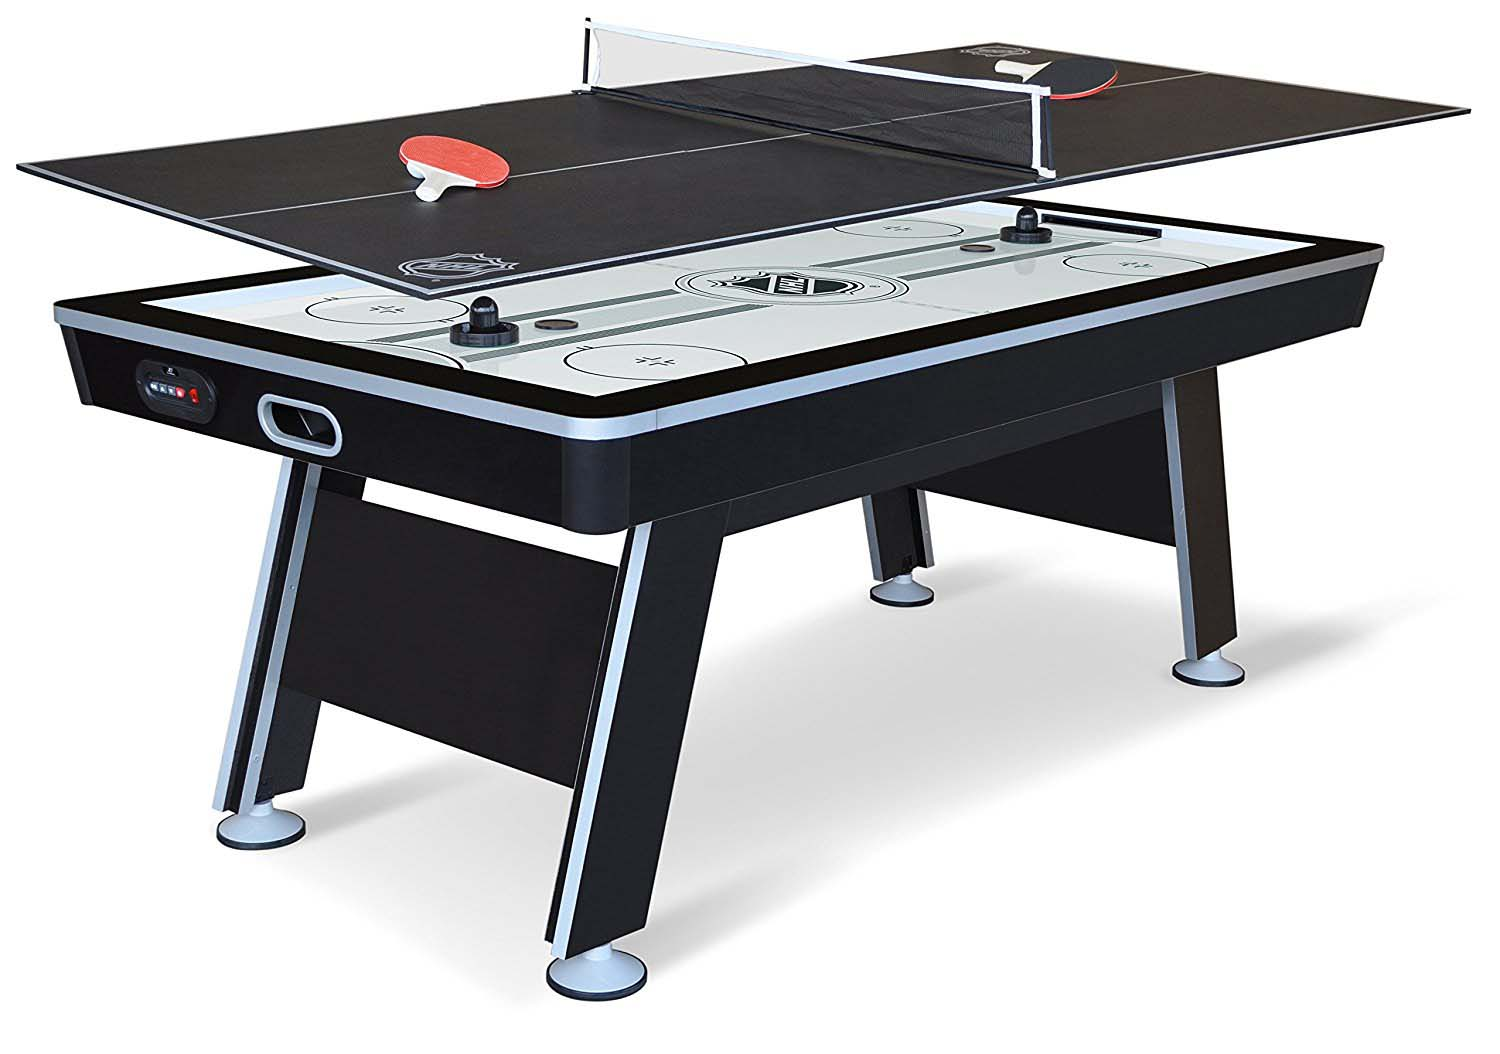 The Top Best Air Hockey Ping Pong Table Combo Reviews For - Air hockey table with ping pong top